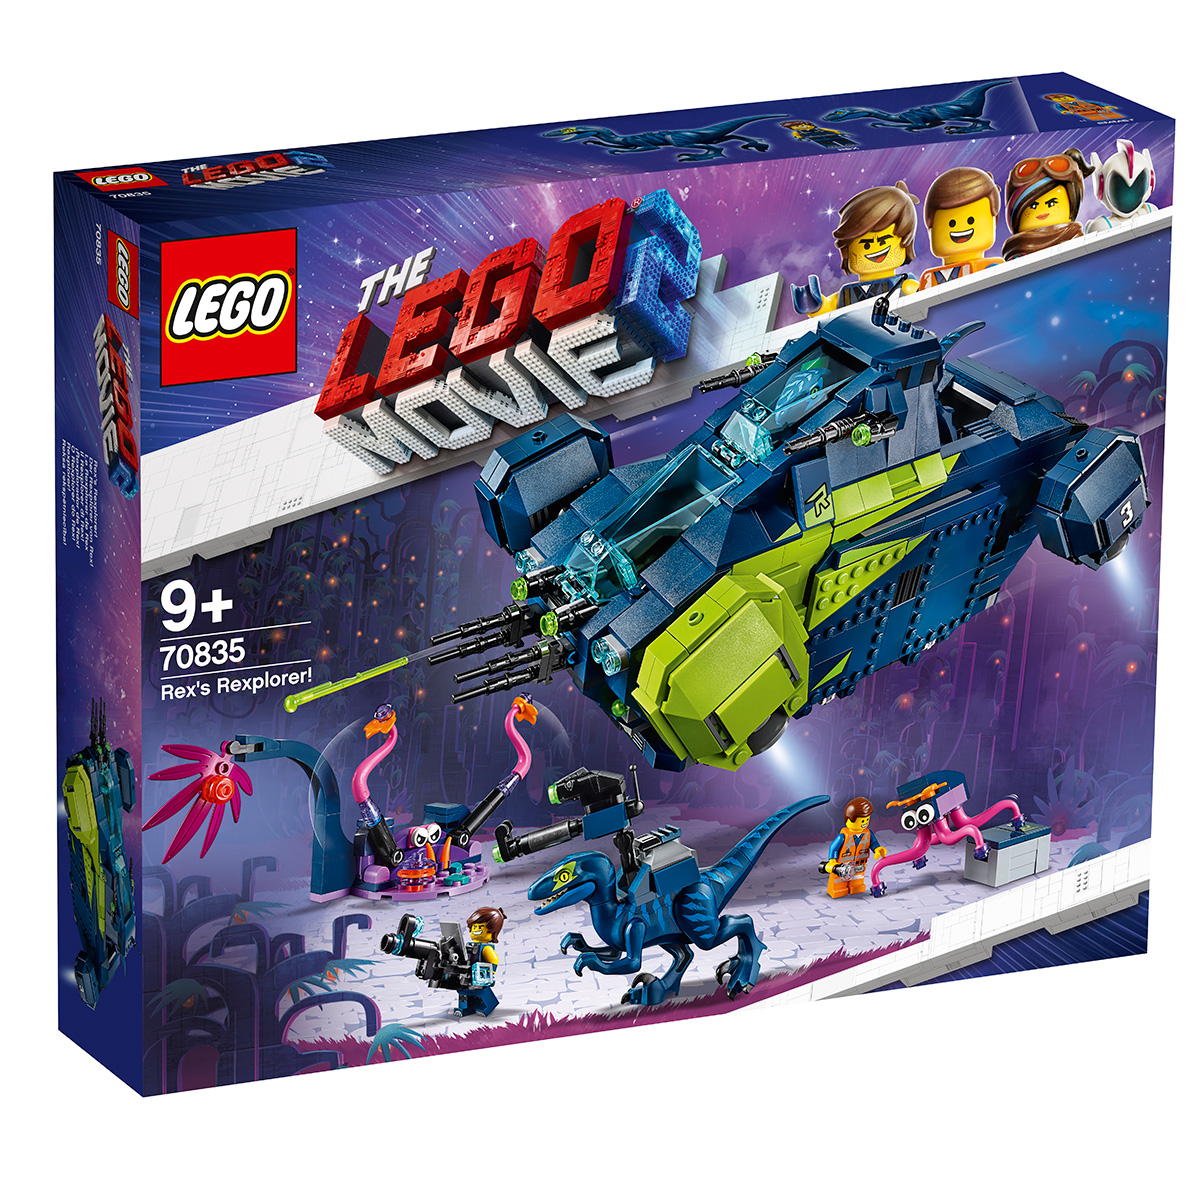 The LEGO Movie 2 Building Sets Unveiled - ComingSoon.net